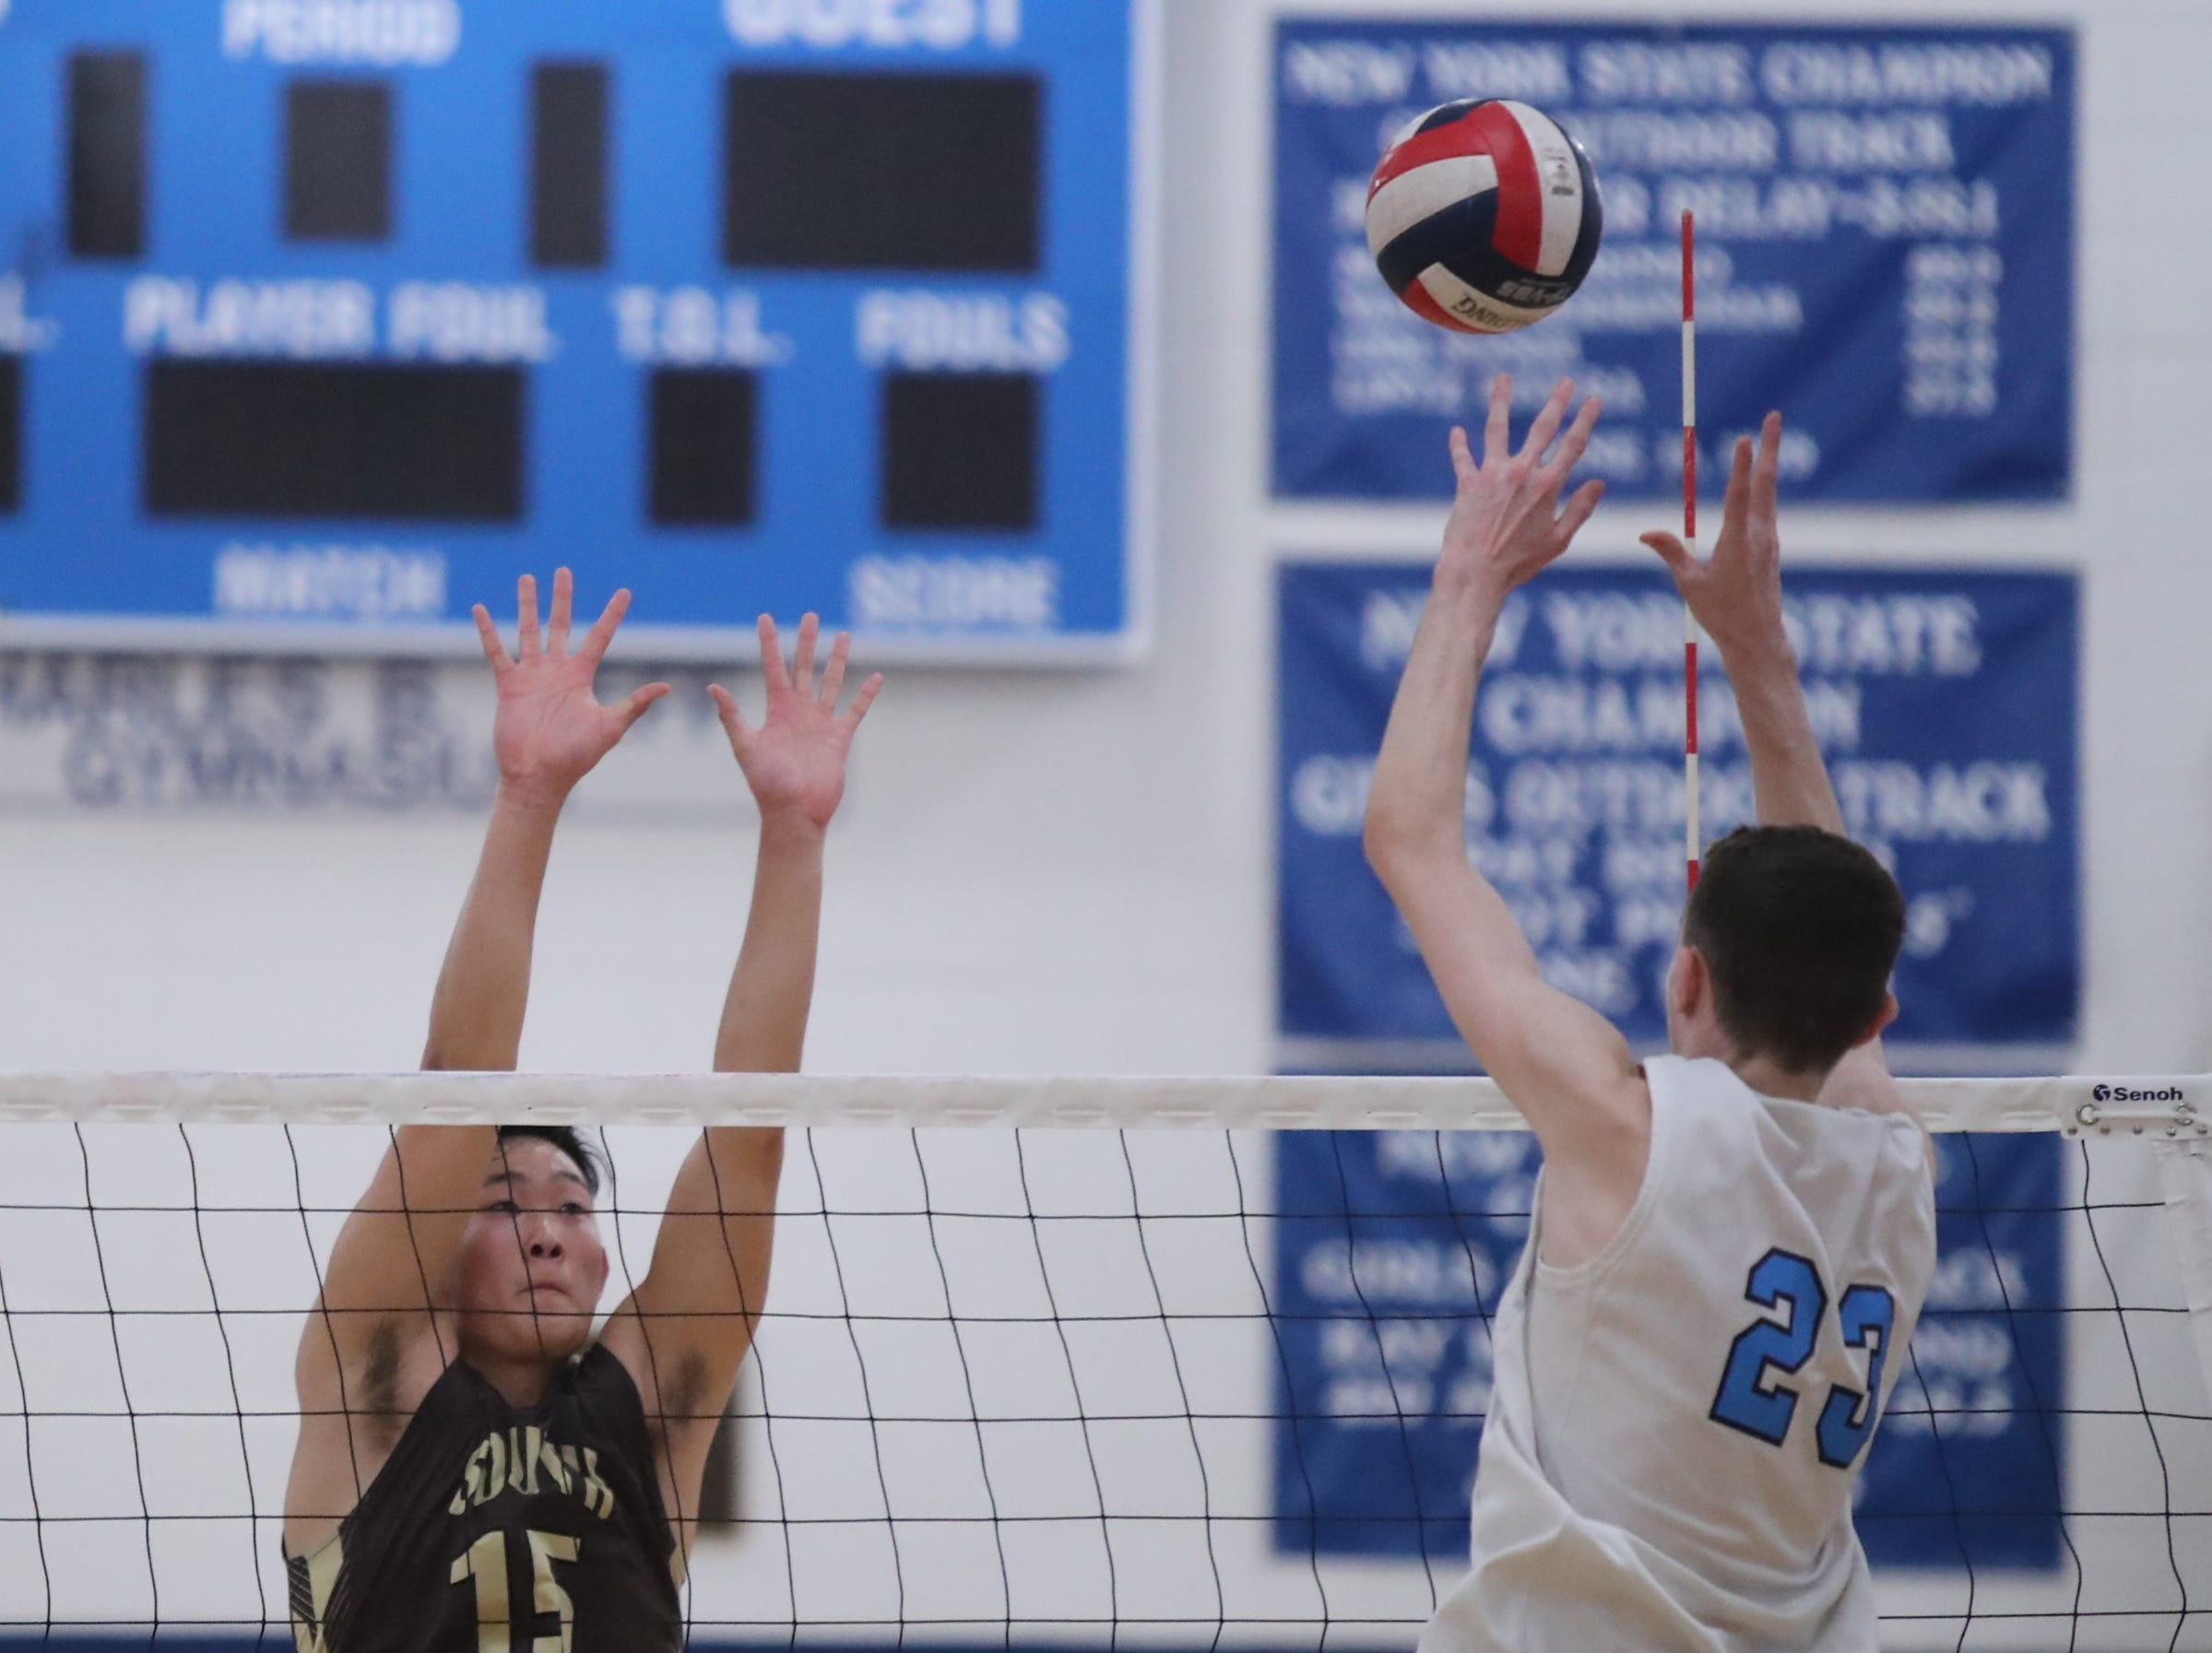 Suffern's Aidan Anderson (23) hits a shot as Clarkstown South's Michael Ro (15) attempts a block during their 3-1 win in boys volleyball action at Suffern High School in Suffern on Thursday, October 11, 2018.